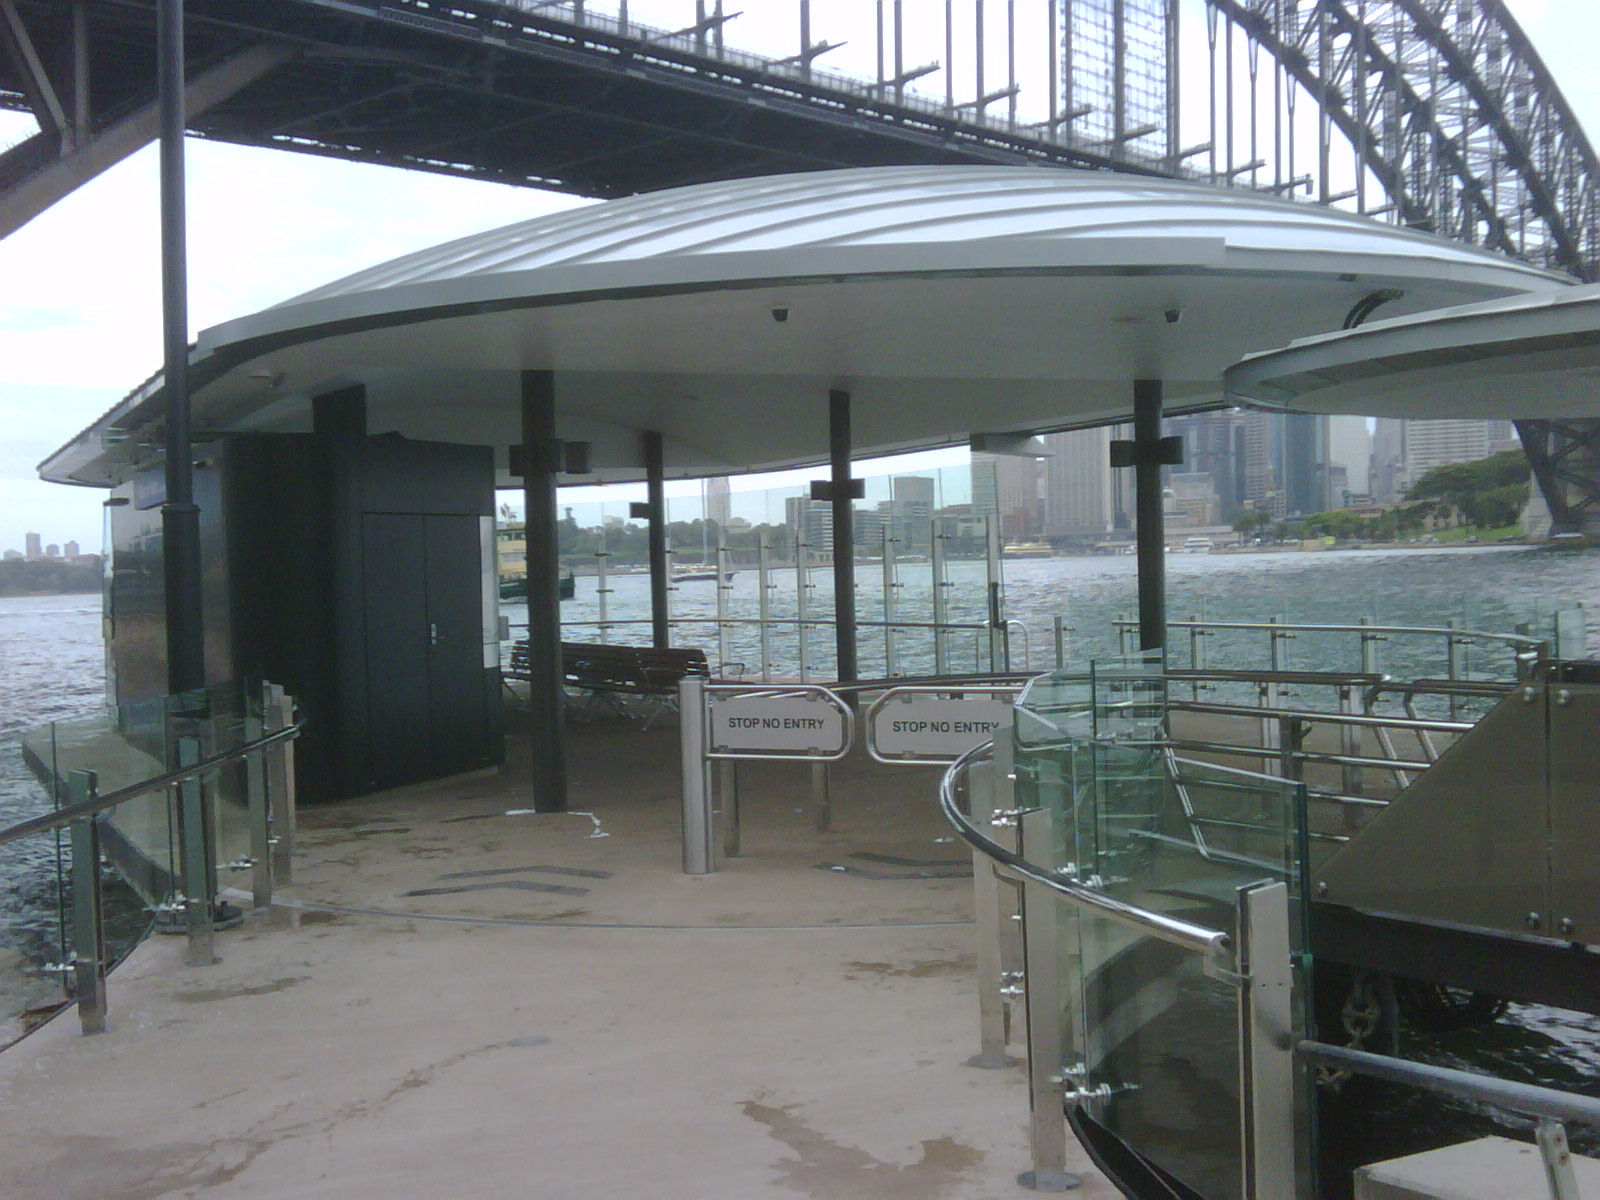 Milson Point new ferry wharf nearing completion 2011 group GSA photograph